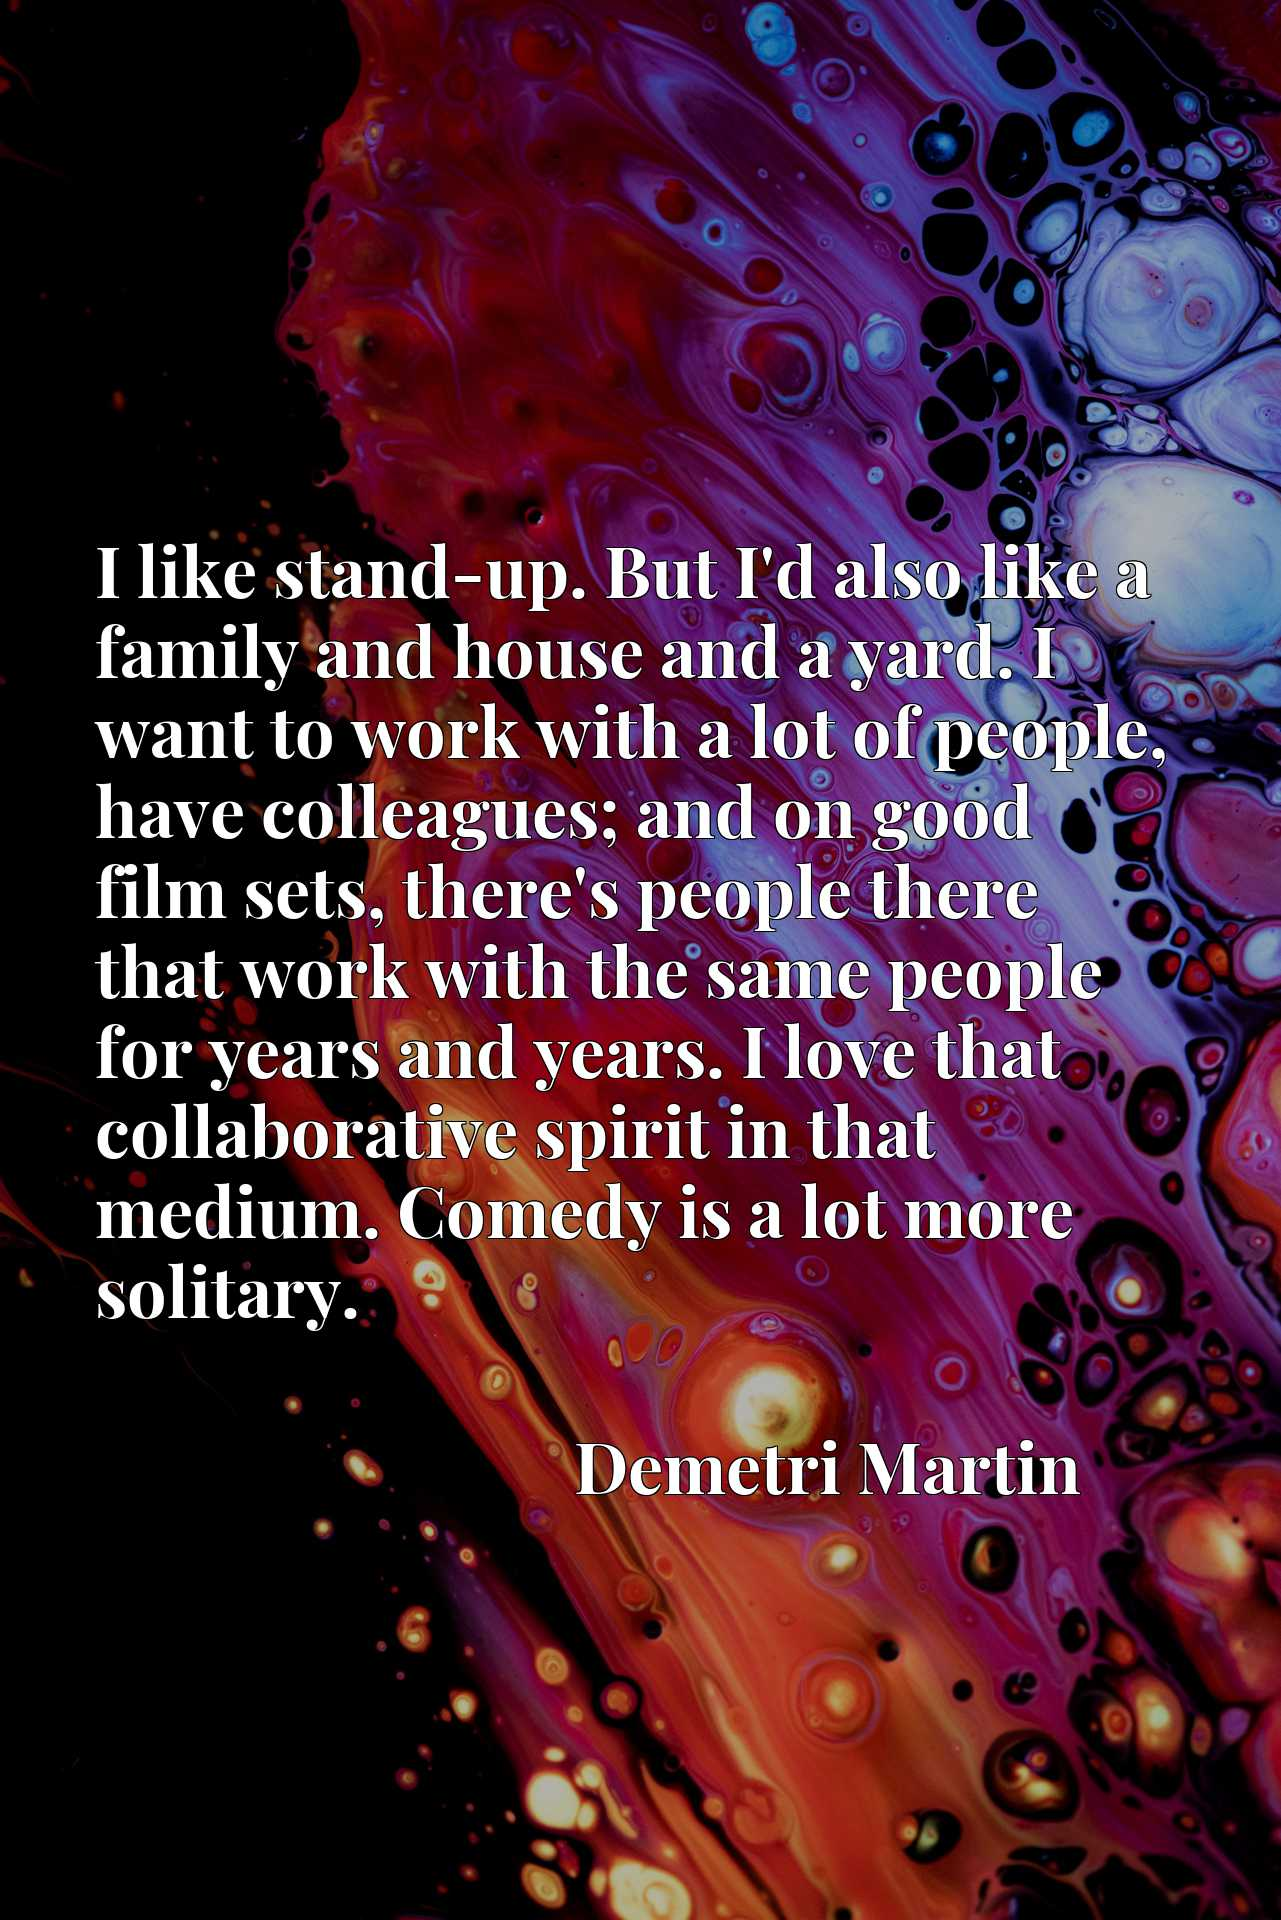 I like stand-up. But I'd also like a family and house and a yard. I want to work with a lot of people, have colleagues; and on good film sets, there's people there that work with the same people for years and years. I love that collaborative spirit in that medium. Comedy is a lot more solitary.